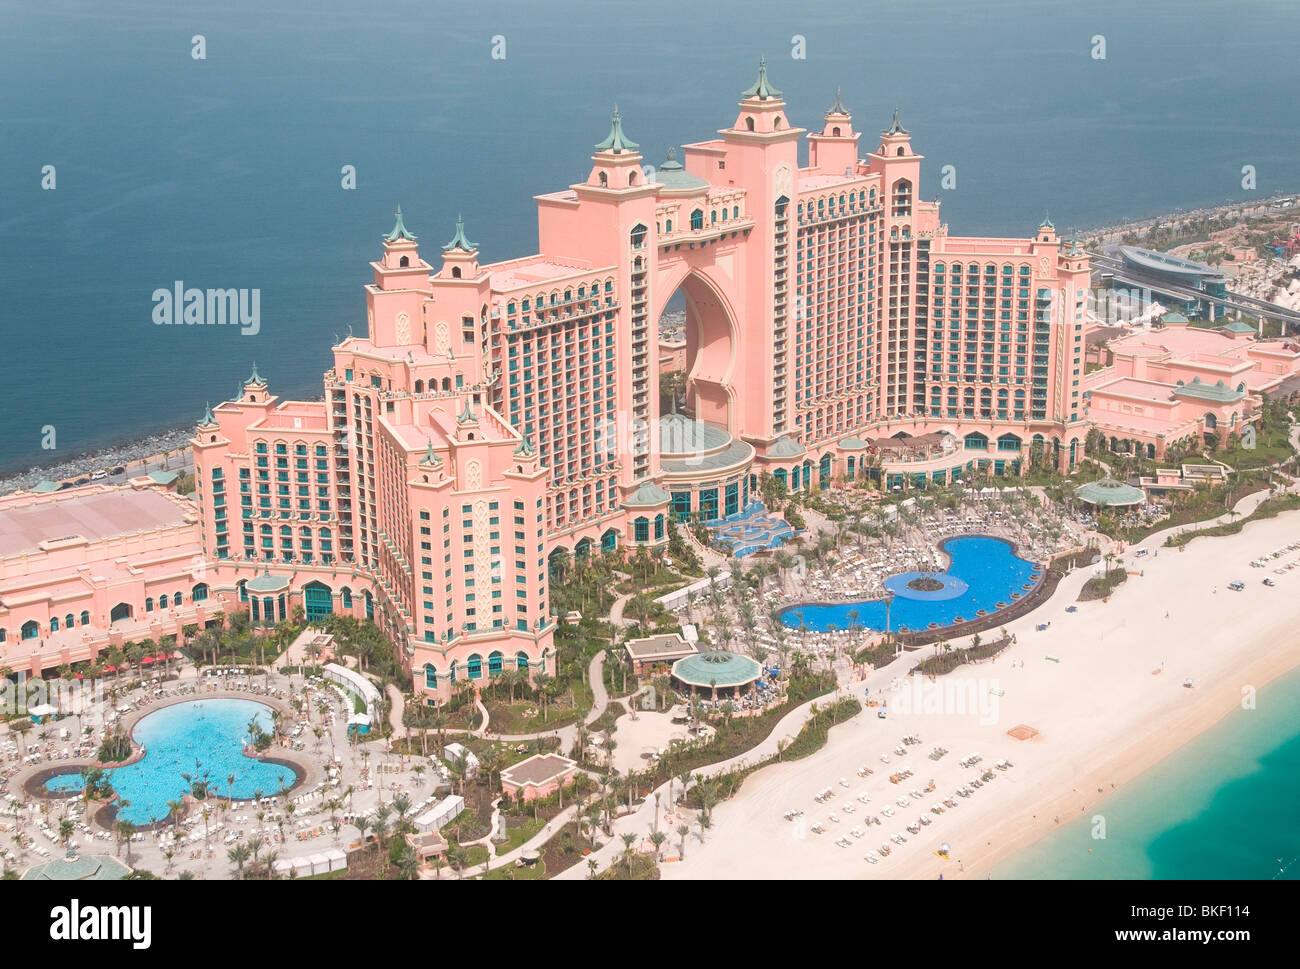 Aerial photograph of the Atlantis Hotel on the Palm in Dubai UAE - Stock Image